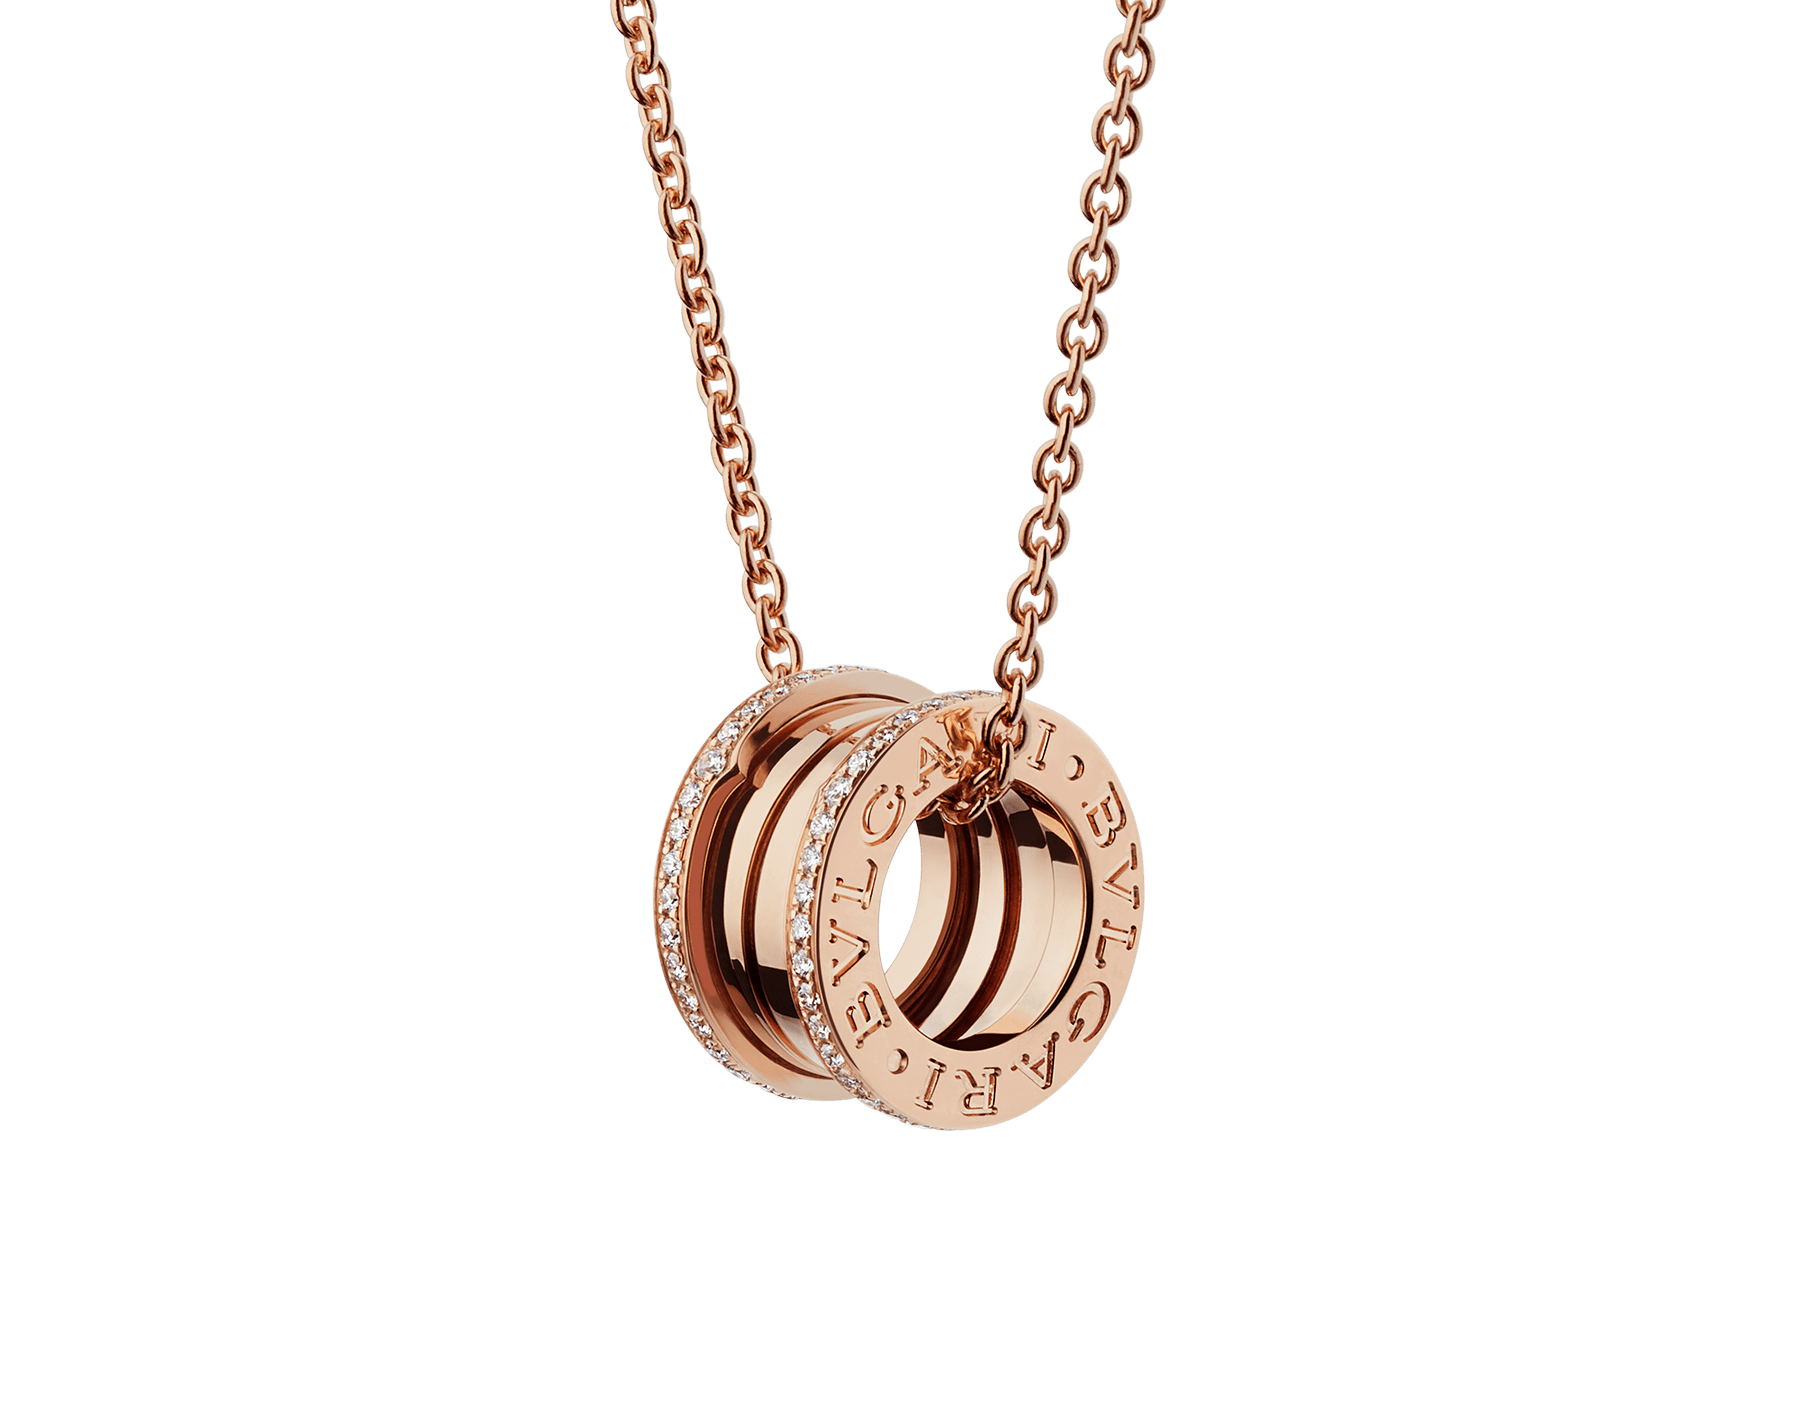 B.zero1 necklace with 18 kt rose gold chain and 18 kt rose gold round pendant set with pavé diamonds on the edges. 350052 image 1